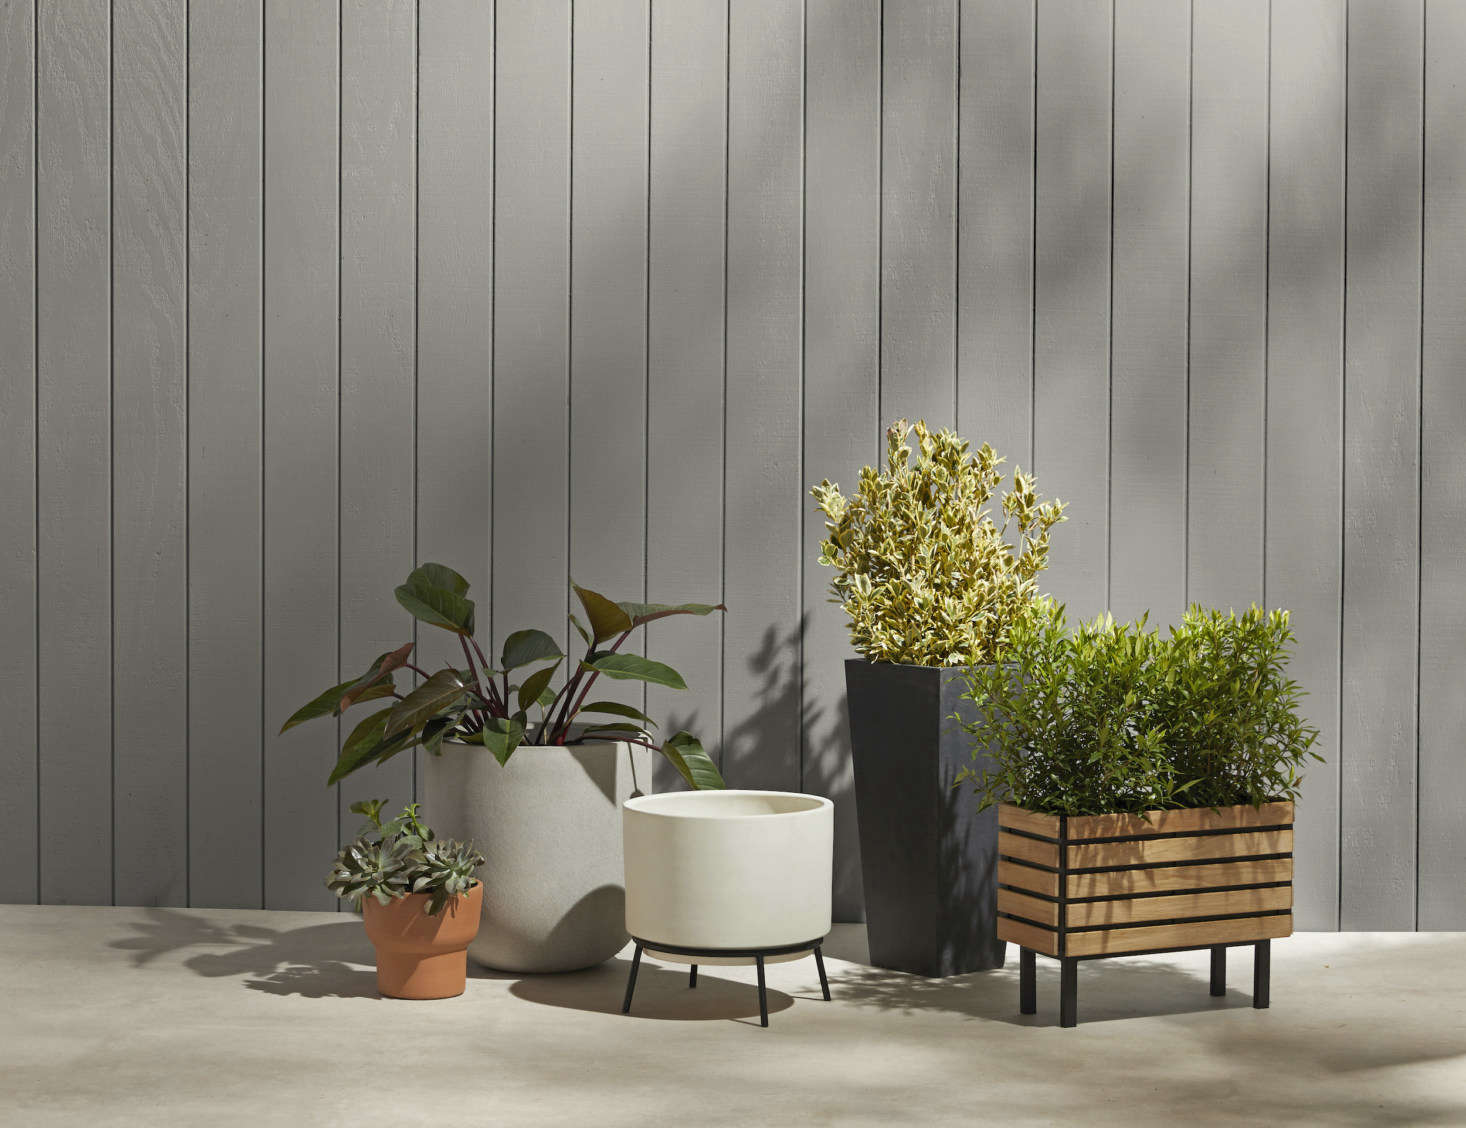 A cluster of Rejuvenation's planter offerings, from midcentury-style to clean-lined teak, terracotta to steely grey.